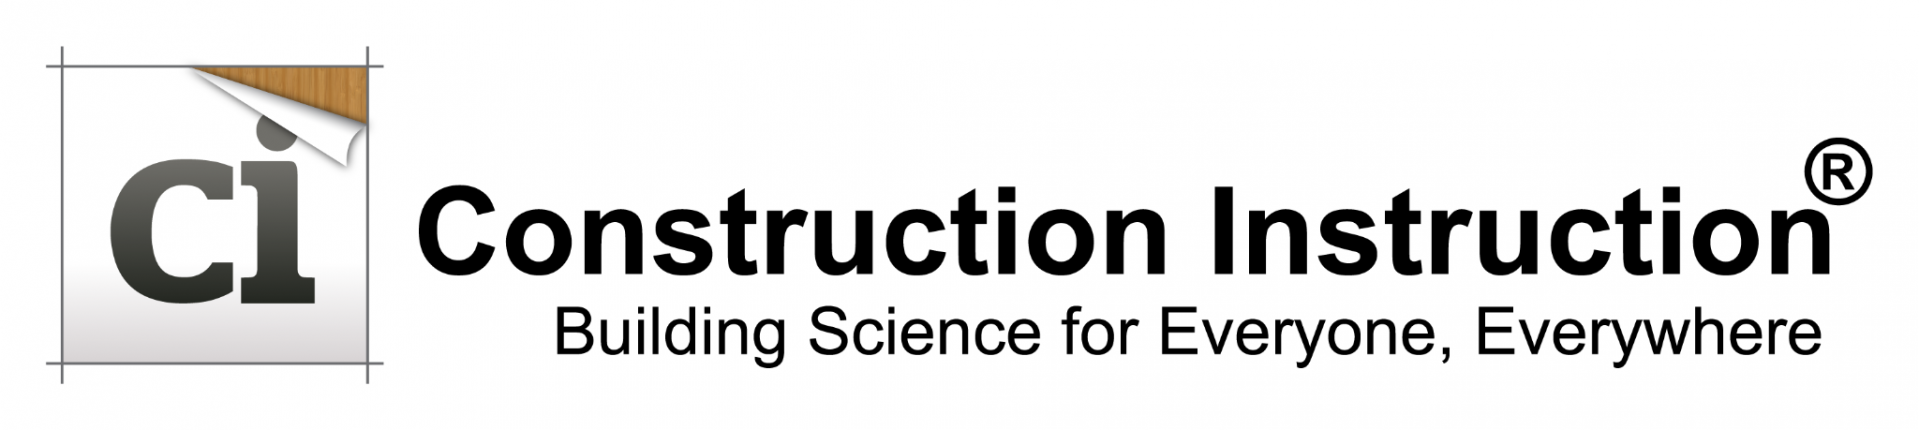 Construction Instruction